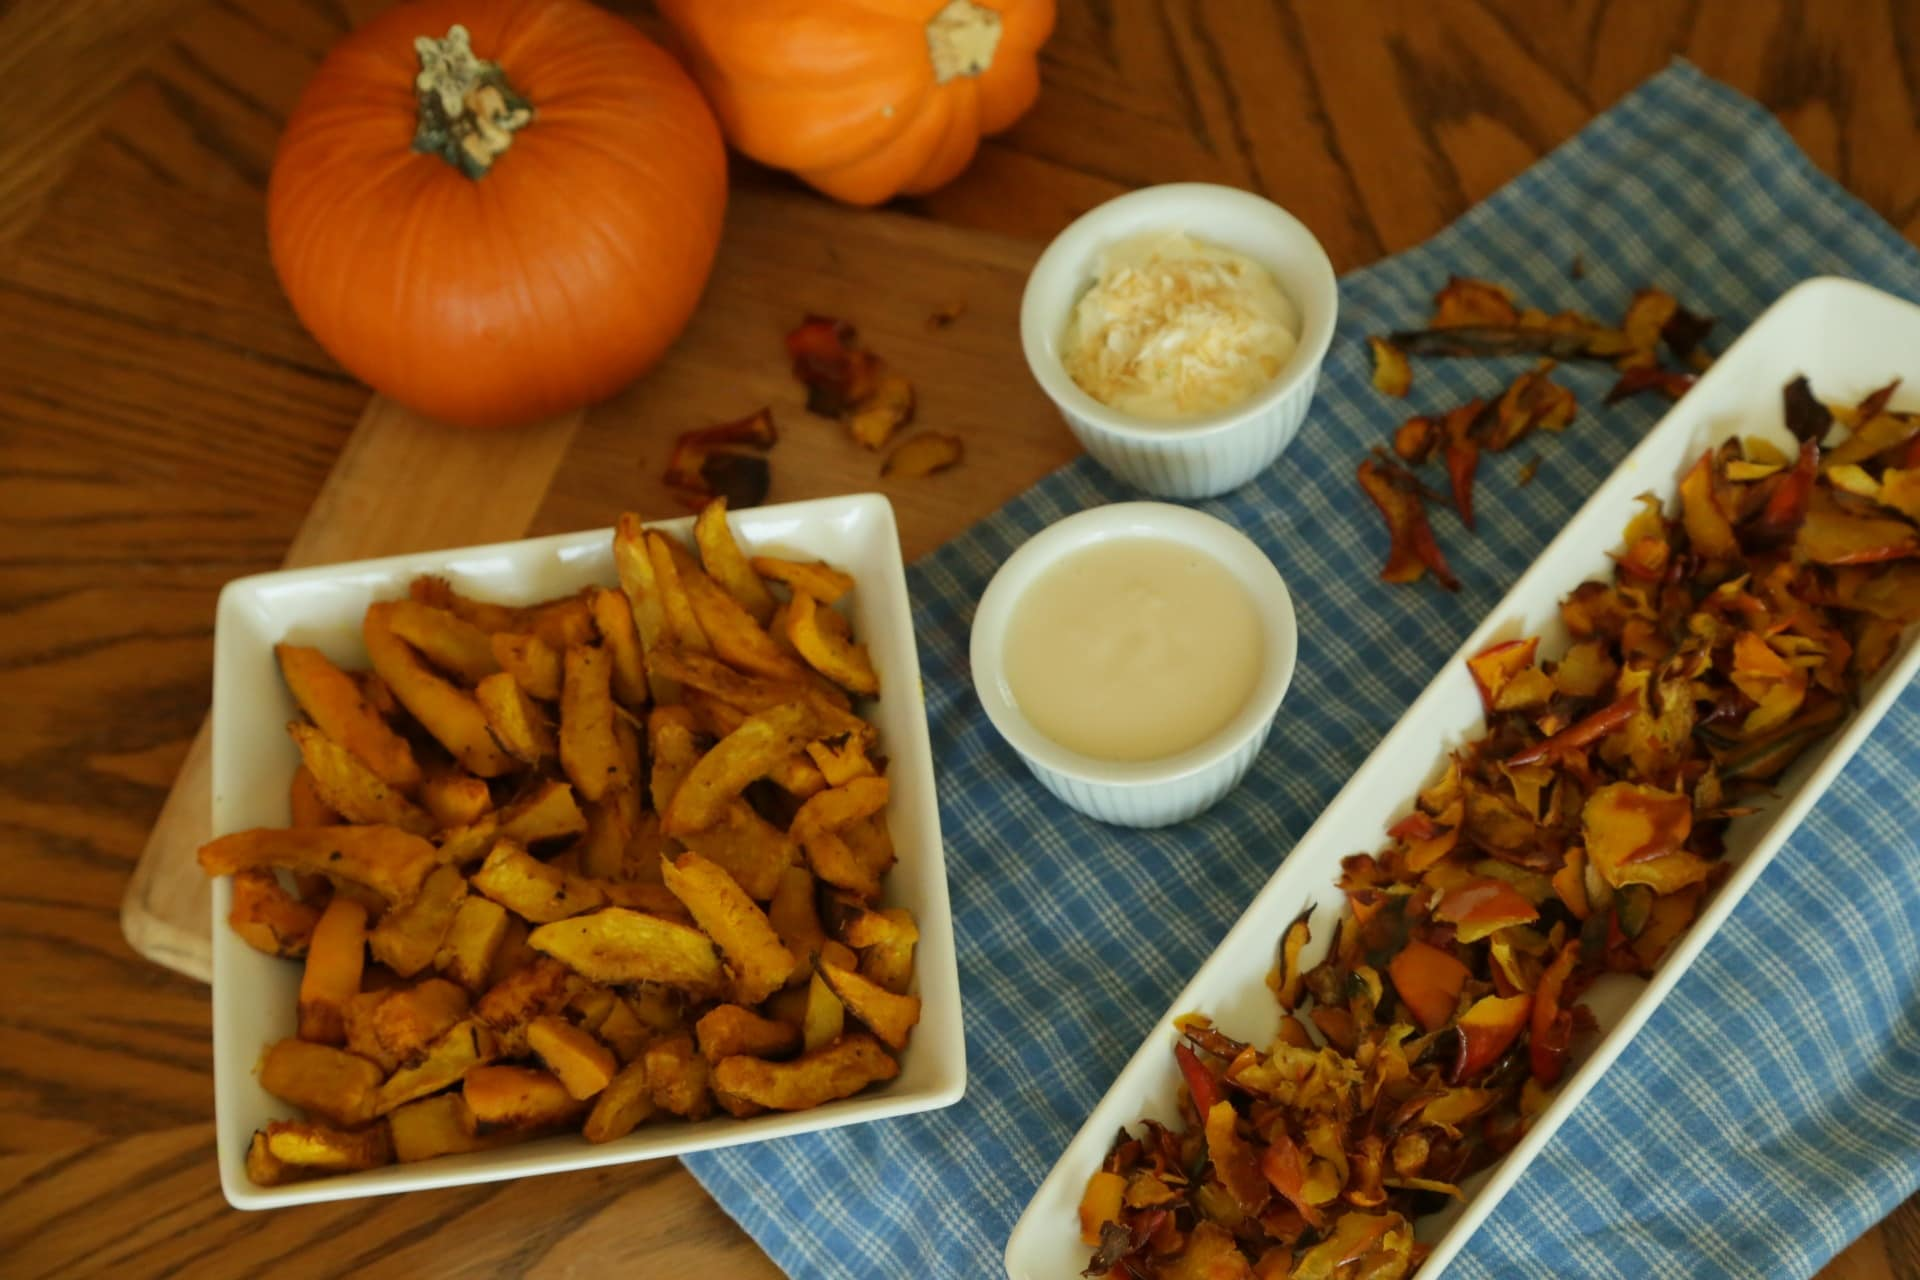 Pumpkin Fries (and Pumpkin Crisps!)